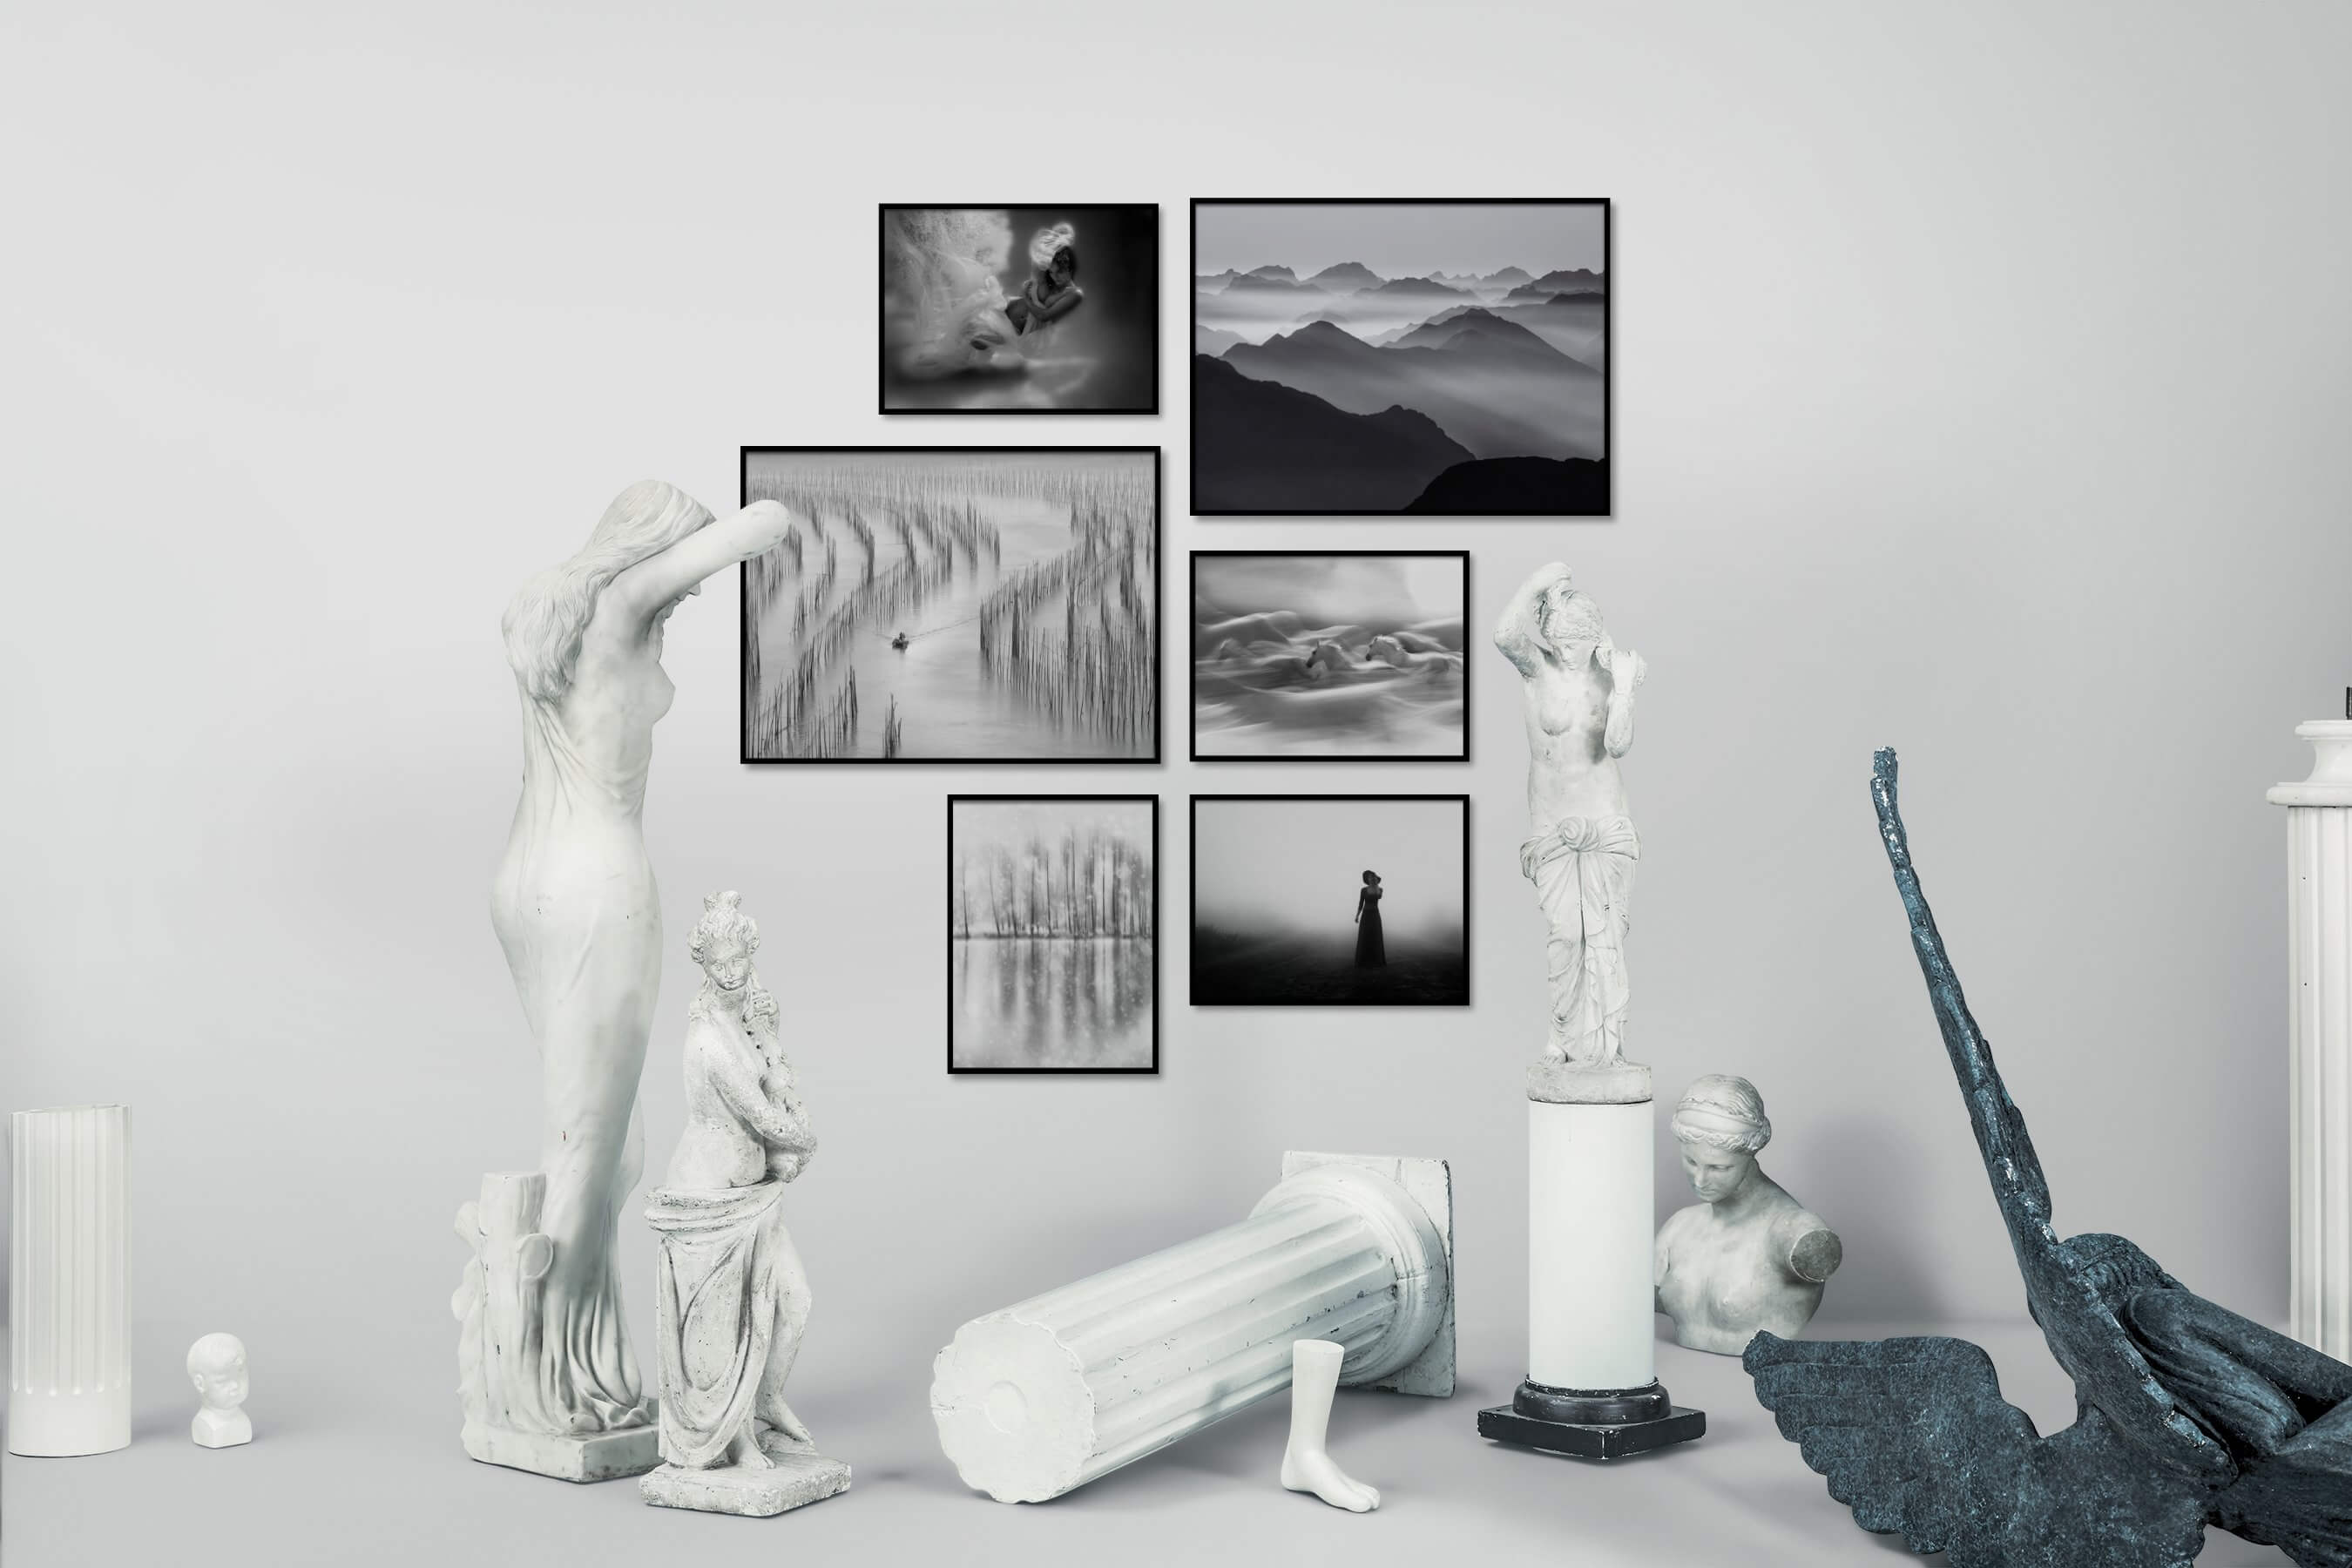 Gallery wall idea with six framed pictures arranged on a wall depicting Fashion & Beauty, Black & White, Beach & Water, Nature, Mindfulness, For the Moderate, Animals, Country Life, and For the Minimalist